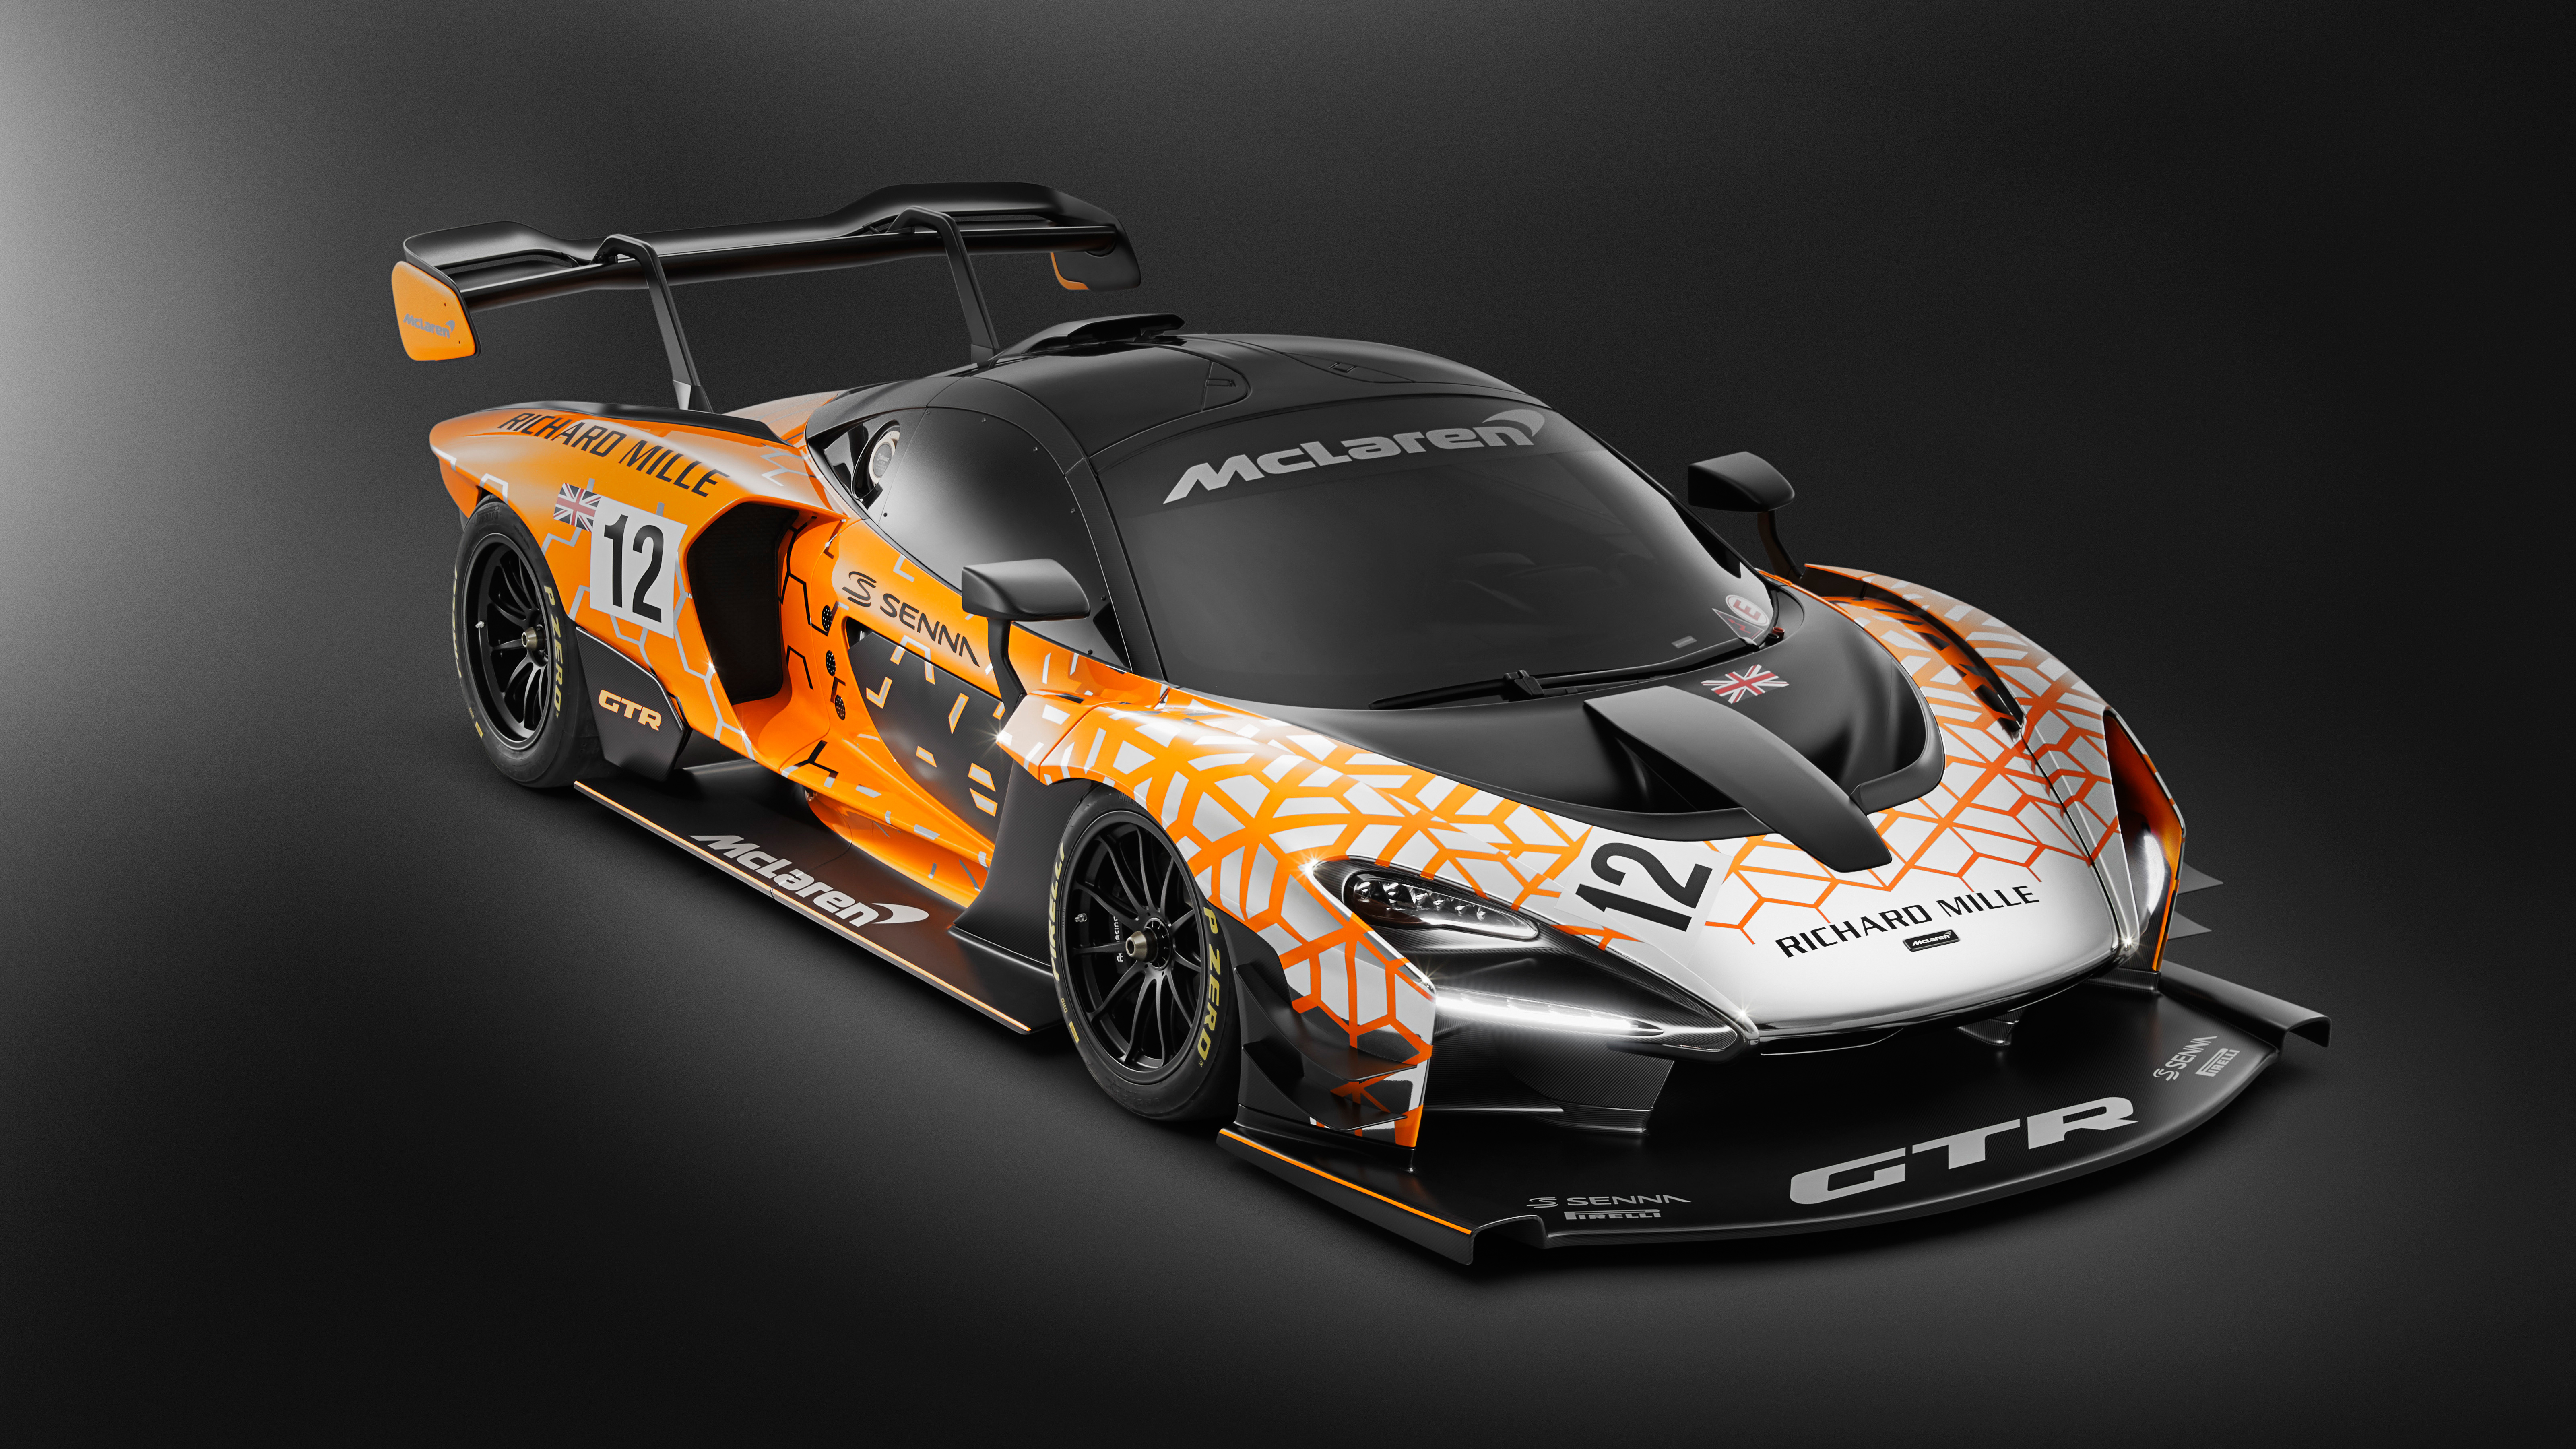 2019 mclaren senna gtr concept 5k wallpaper hd car wallpapers id 9866. Black Bedroom Furniture Sets. Home Design Ideas